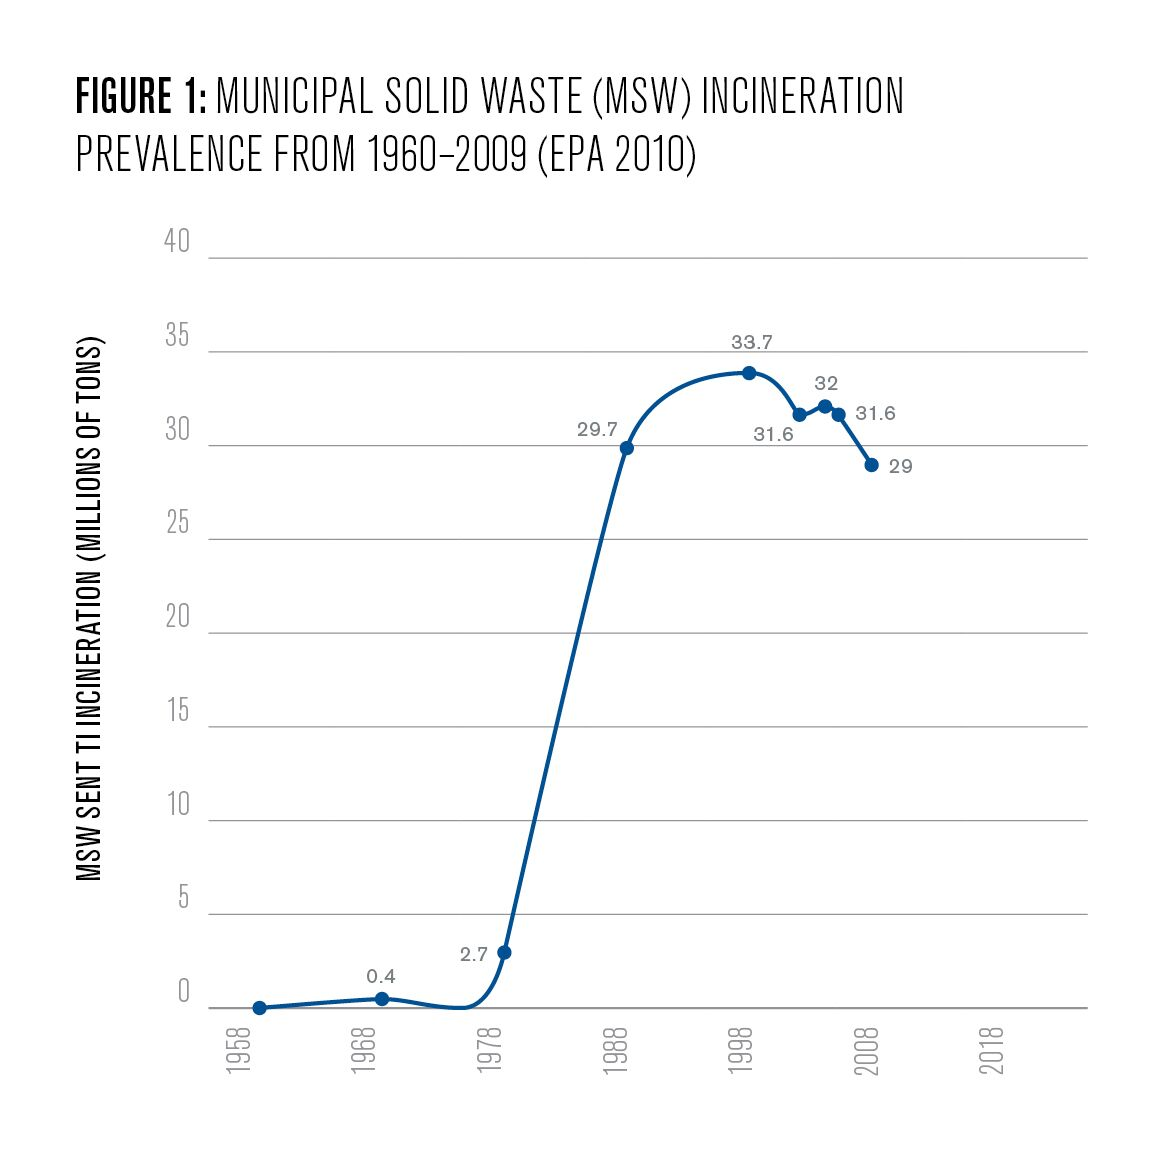 Figure 1: Municipal solid waste (MSW) incineration prevalence from 1960-2009 (EPA 2010)